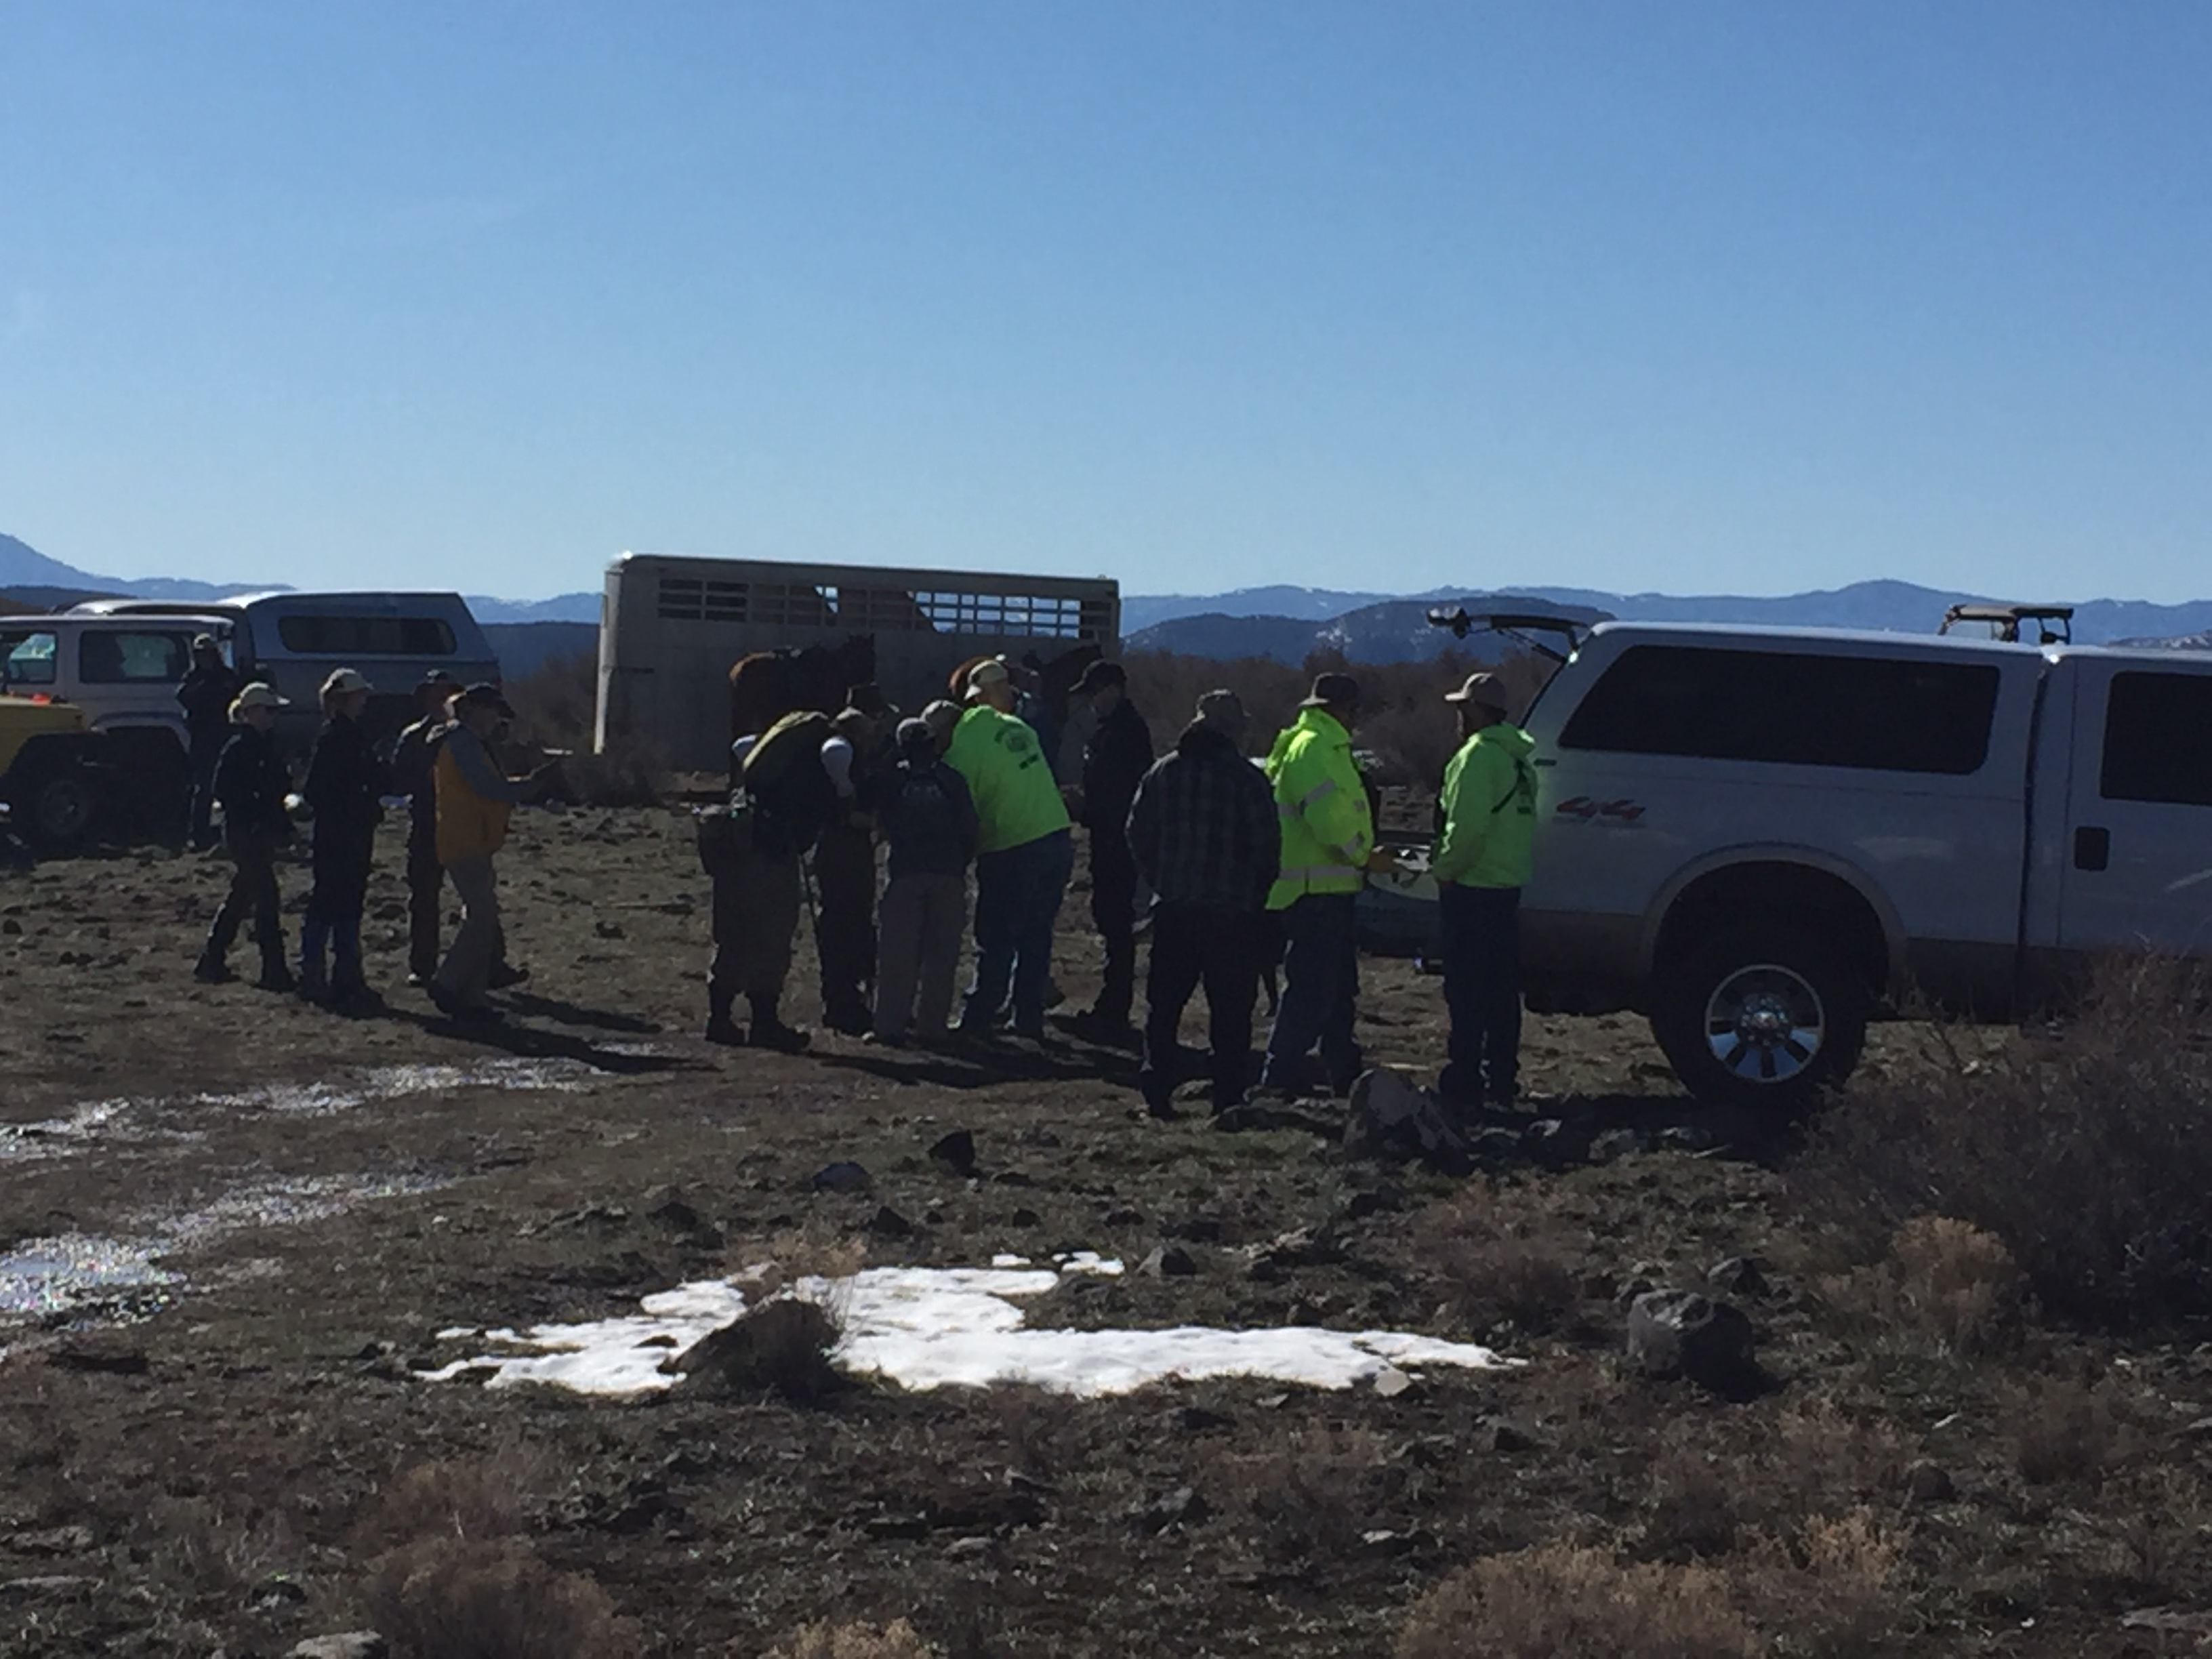 Iron County Sheriff's Search and Rescue crews prepare recovery efforts for Daniel Michael Brown, 34, who was reported missing Tuesday morning from the Kane Springs area. Iron County, Utah, April 2, 2016 | Photo courtesy of Iron County Sheriff's Office, Cedar City News